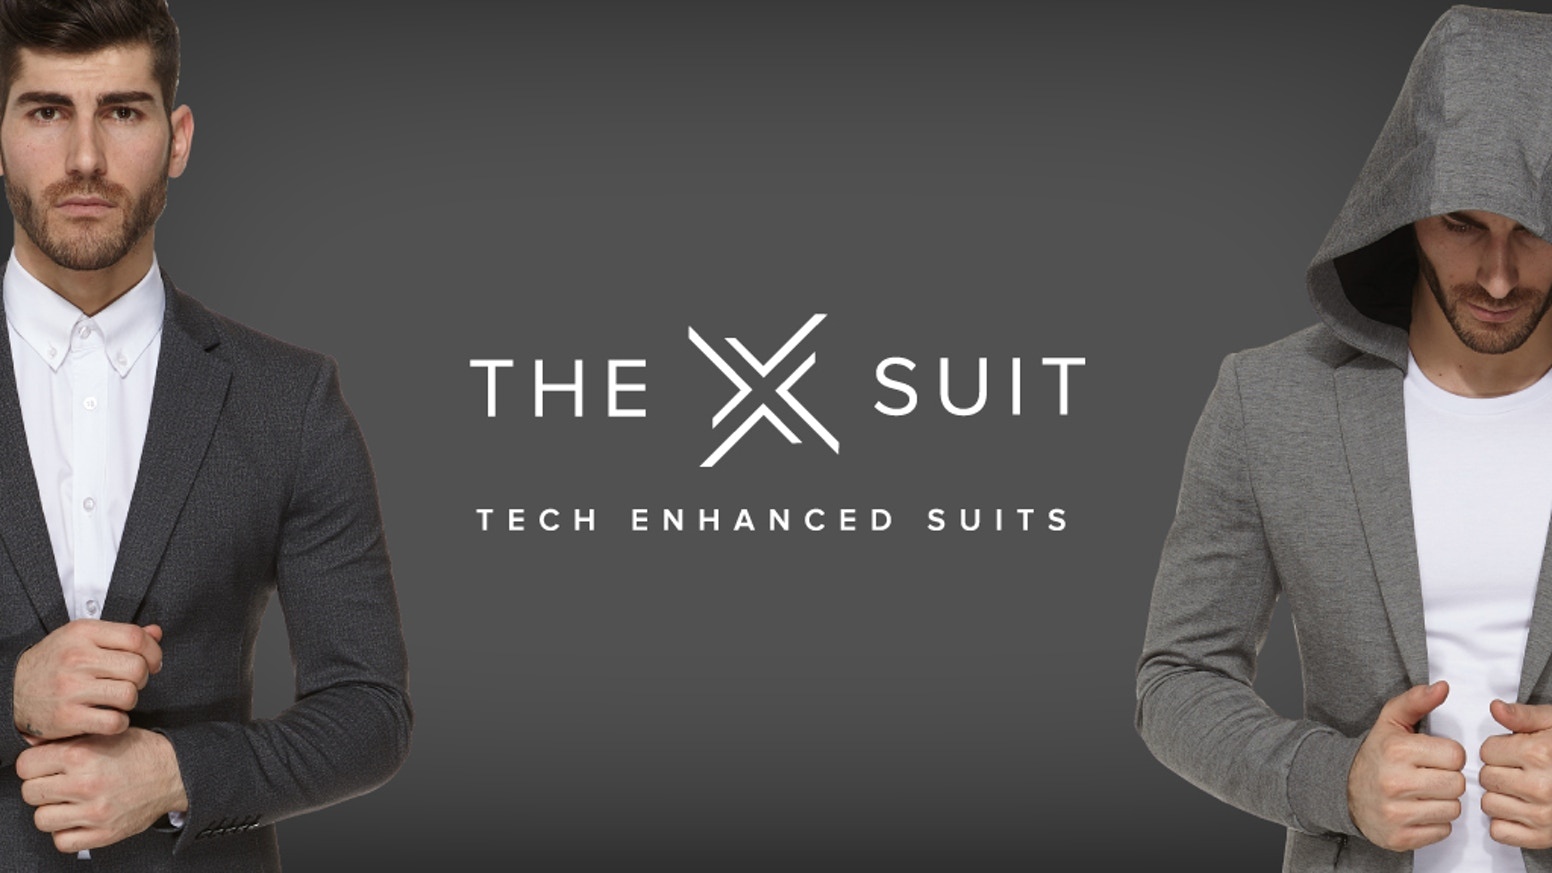 The #1 funded tech-suit on crowdfunding. Now available for express shipping.